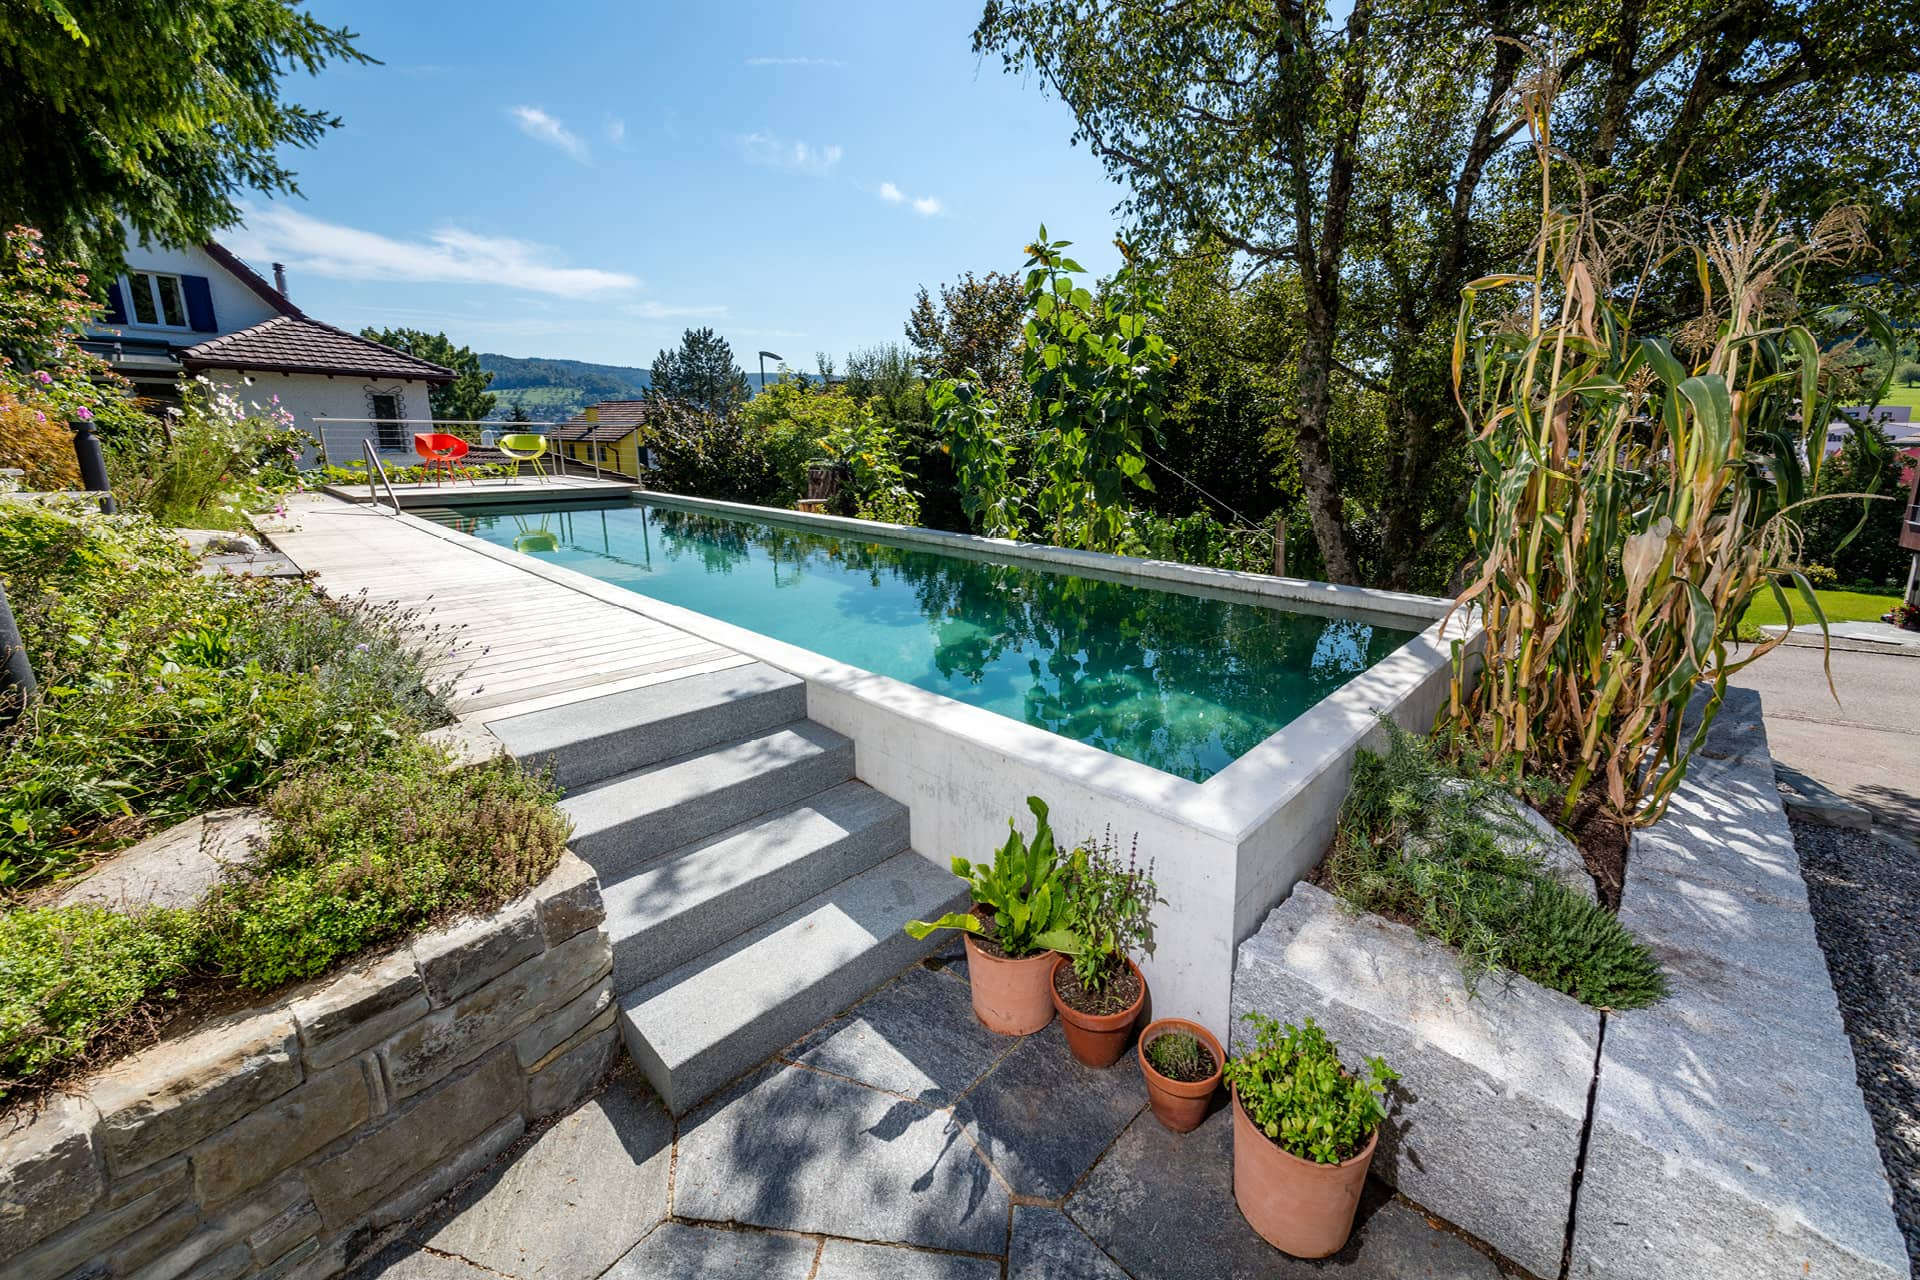 Betonpool Pools - Poolprofi